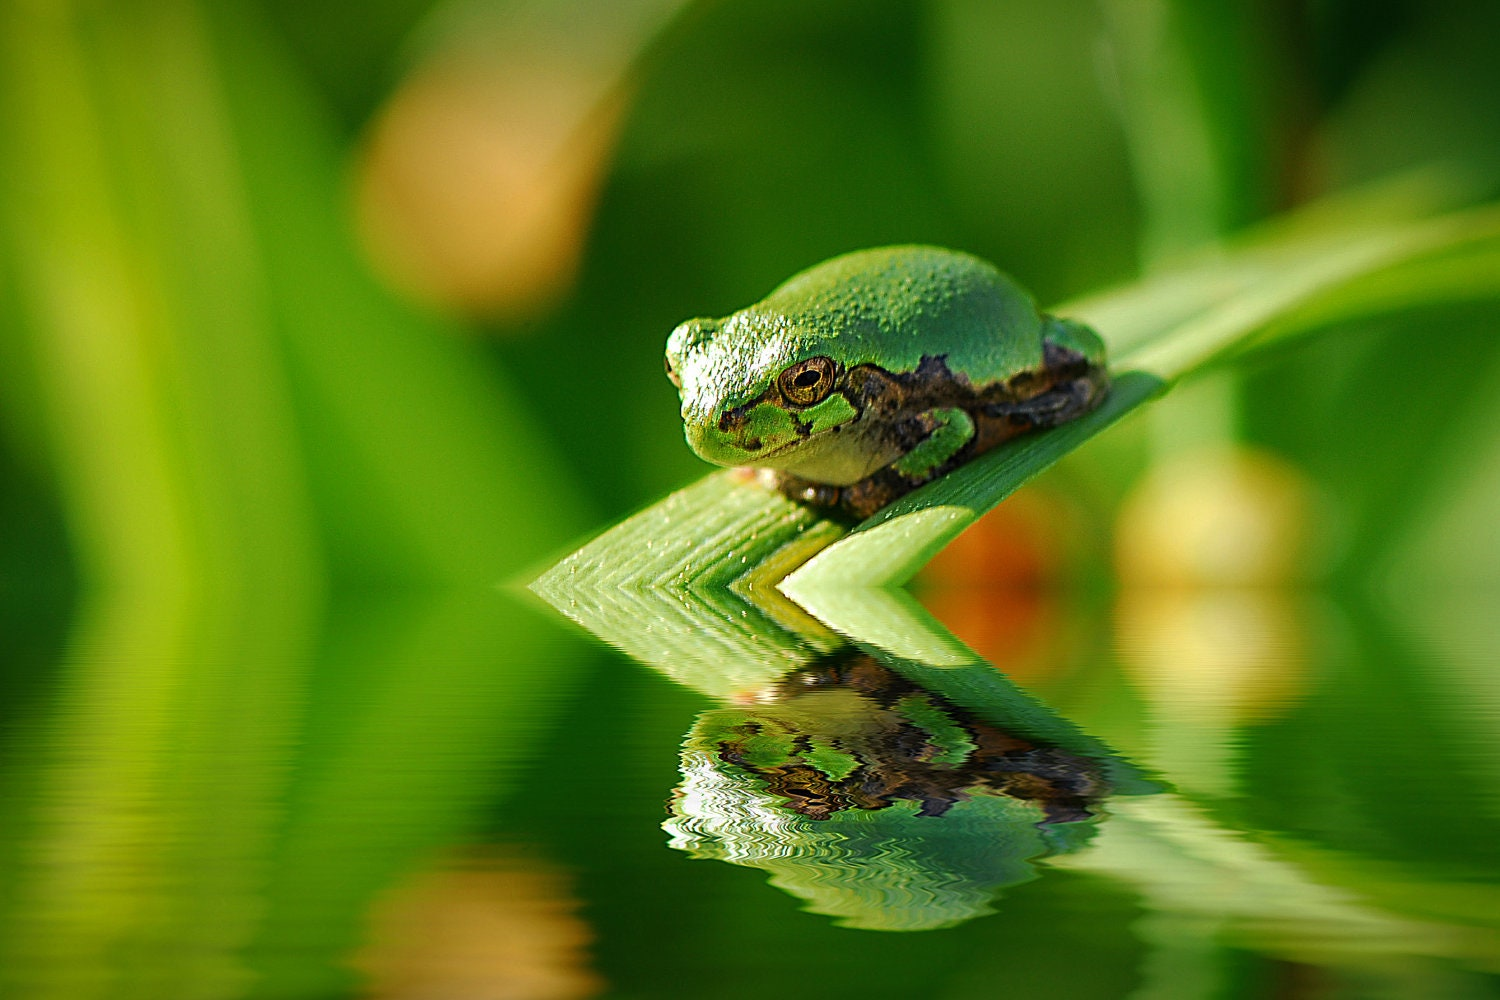 Photo Card of a Green Tree Frog, Nature Photography, Reflection, Spring Green, Water, Kid's Wall Art, Home Decor - SoulCenteredPhotoart